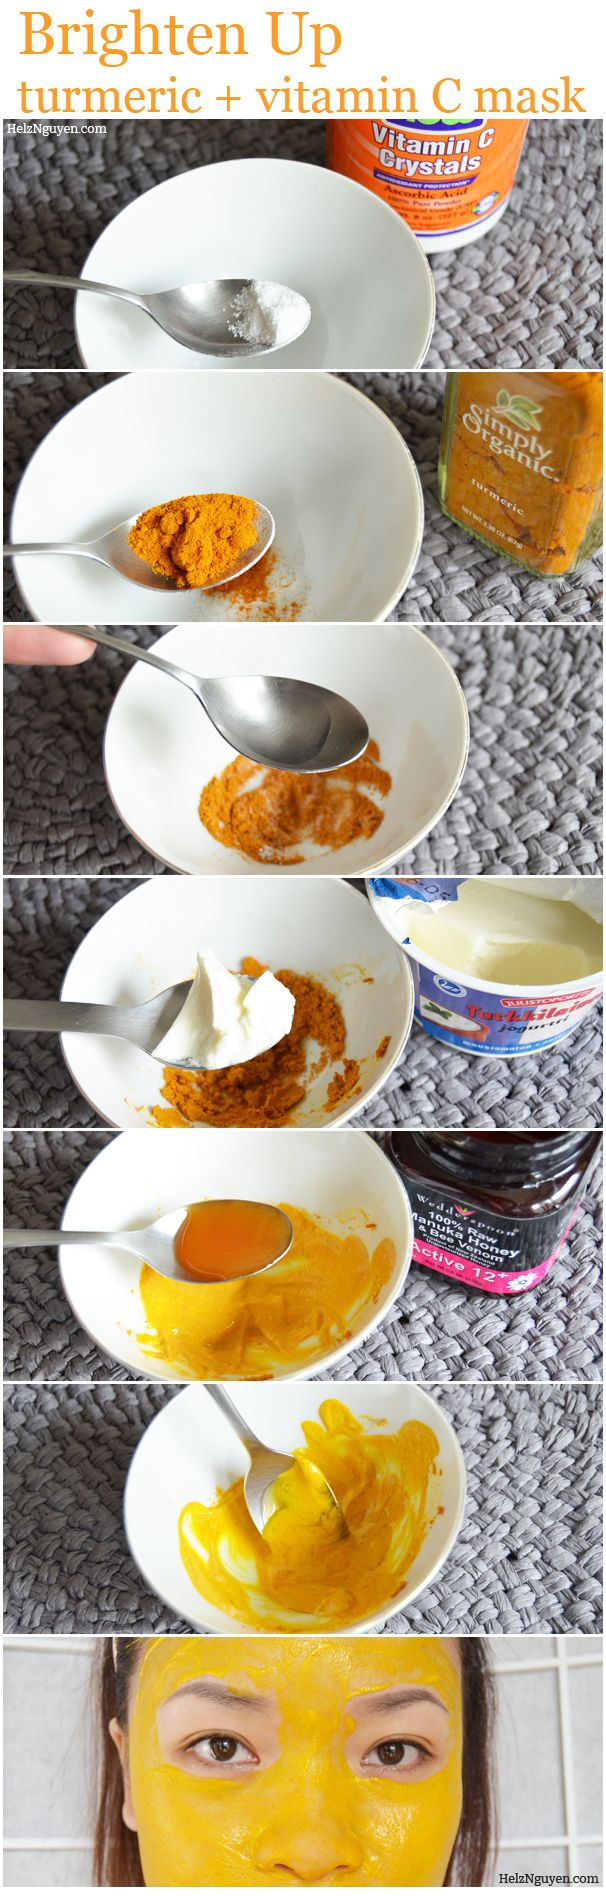 Brighten up turmeric and vitamin c mask diy helen helz nguyeng brighten up turmeric and vitamin c mask diy helen helz nguyen solutioingenieria Images